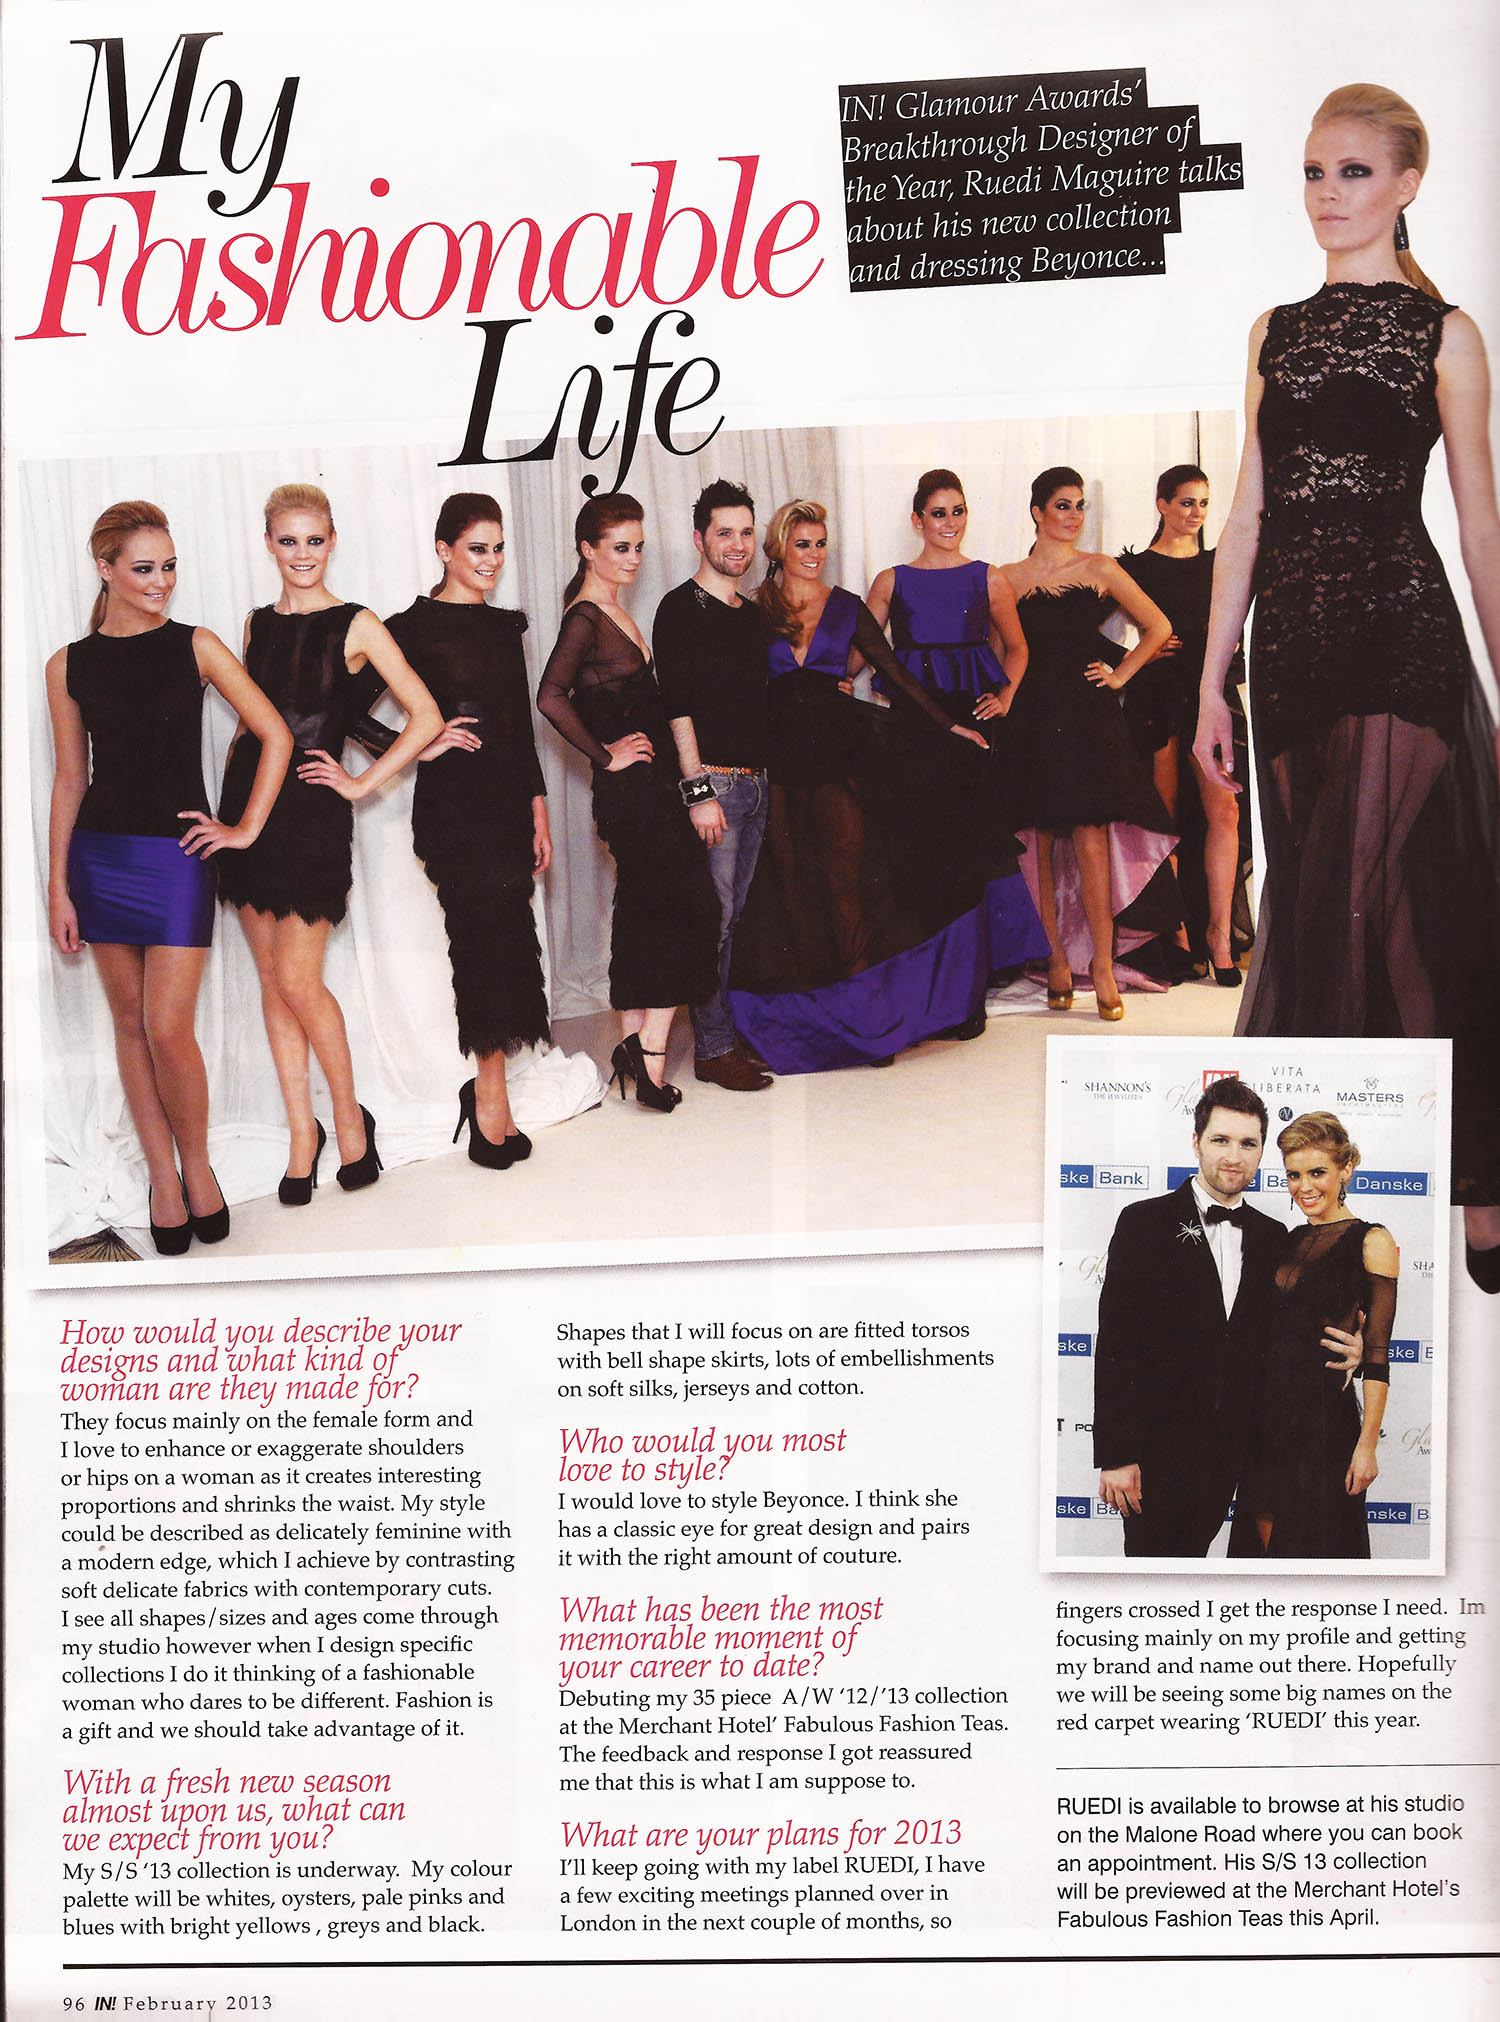 My Fashionable Life - IN! magazine Feb 2013